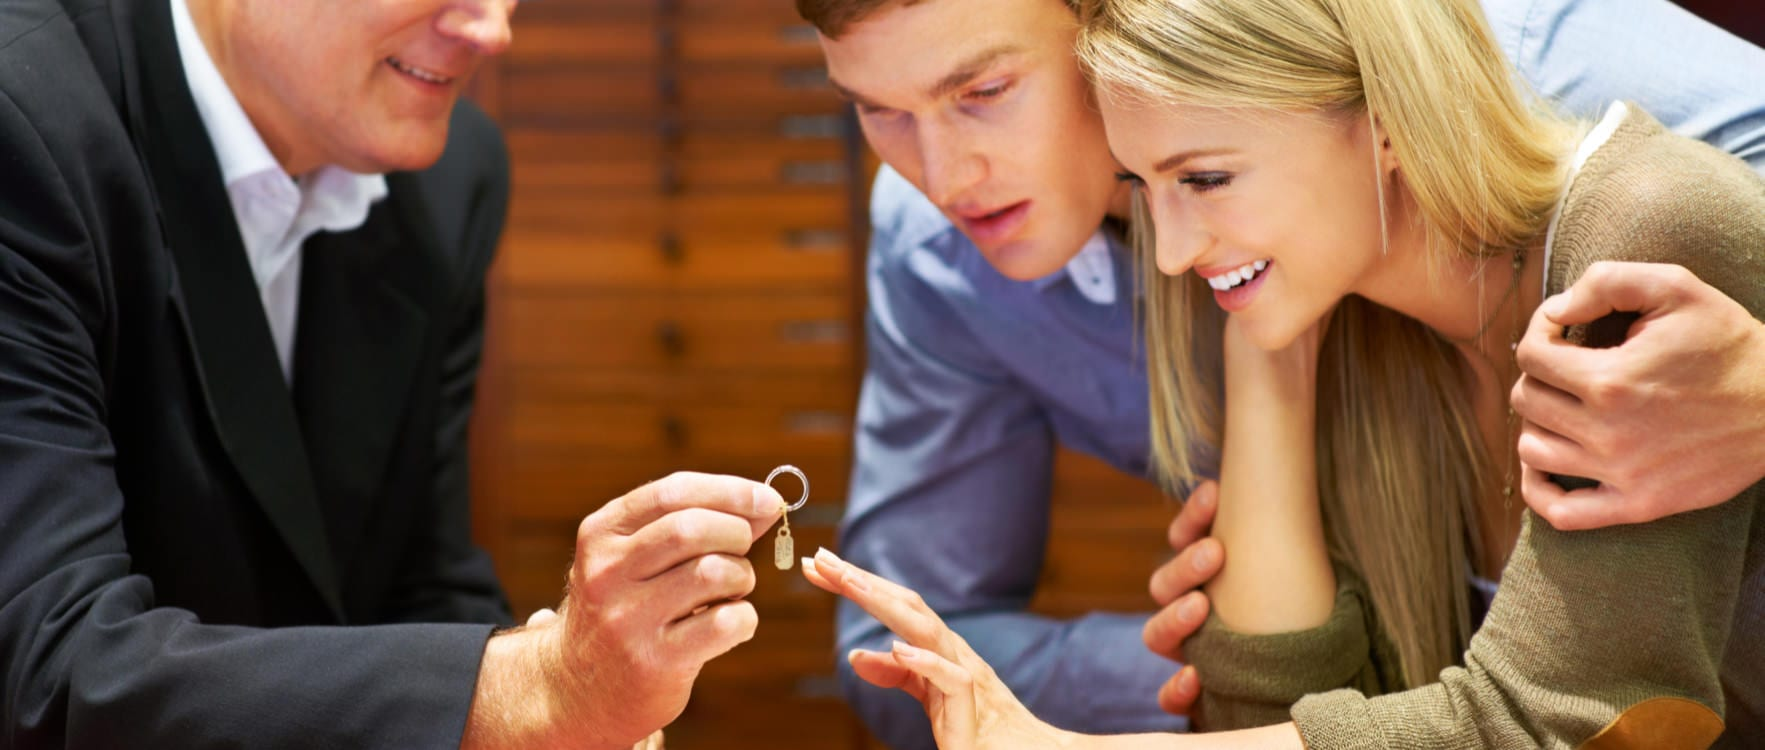 Jewel salesman showing a ring to a happy couple